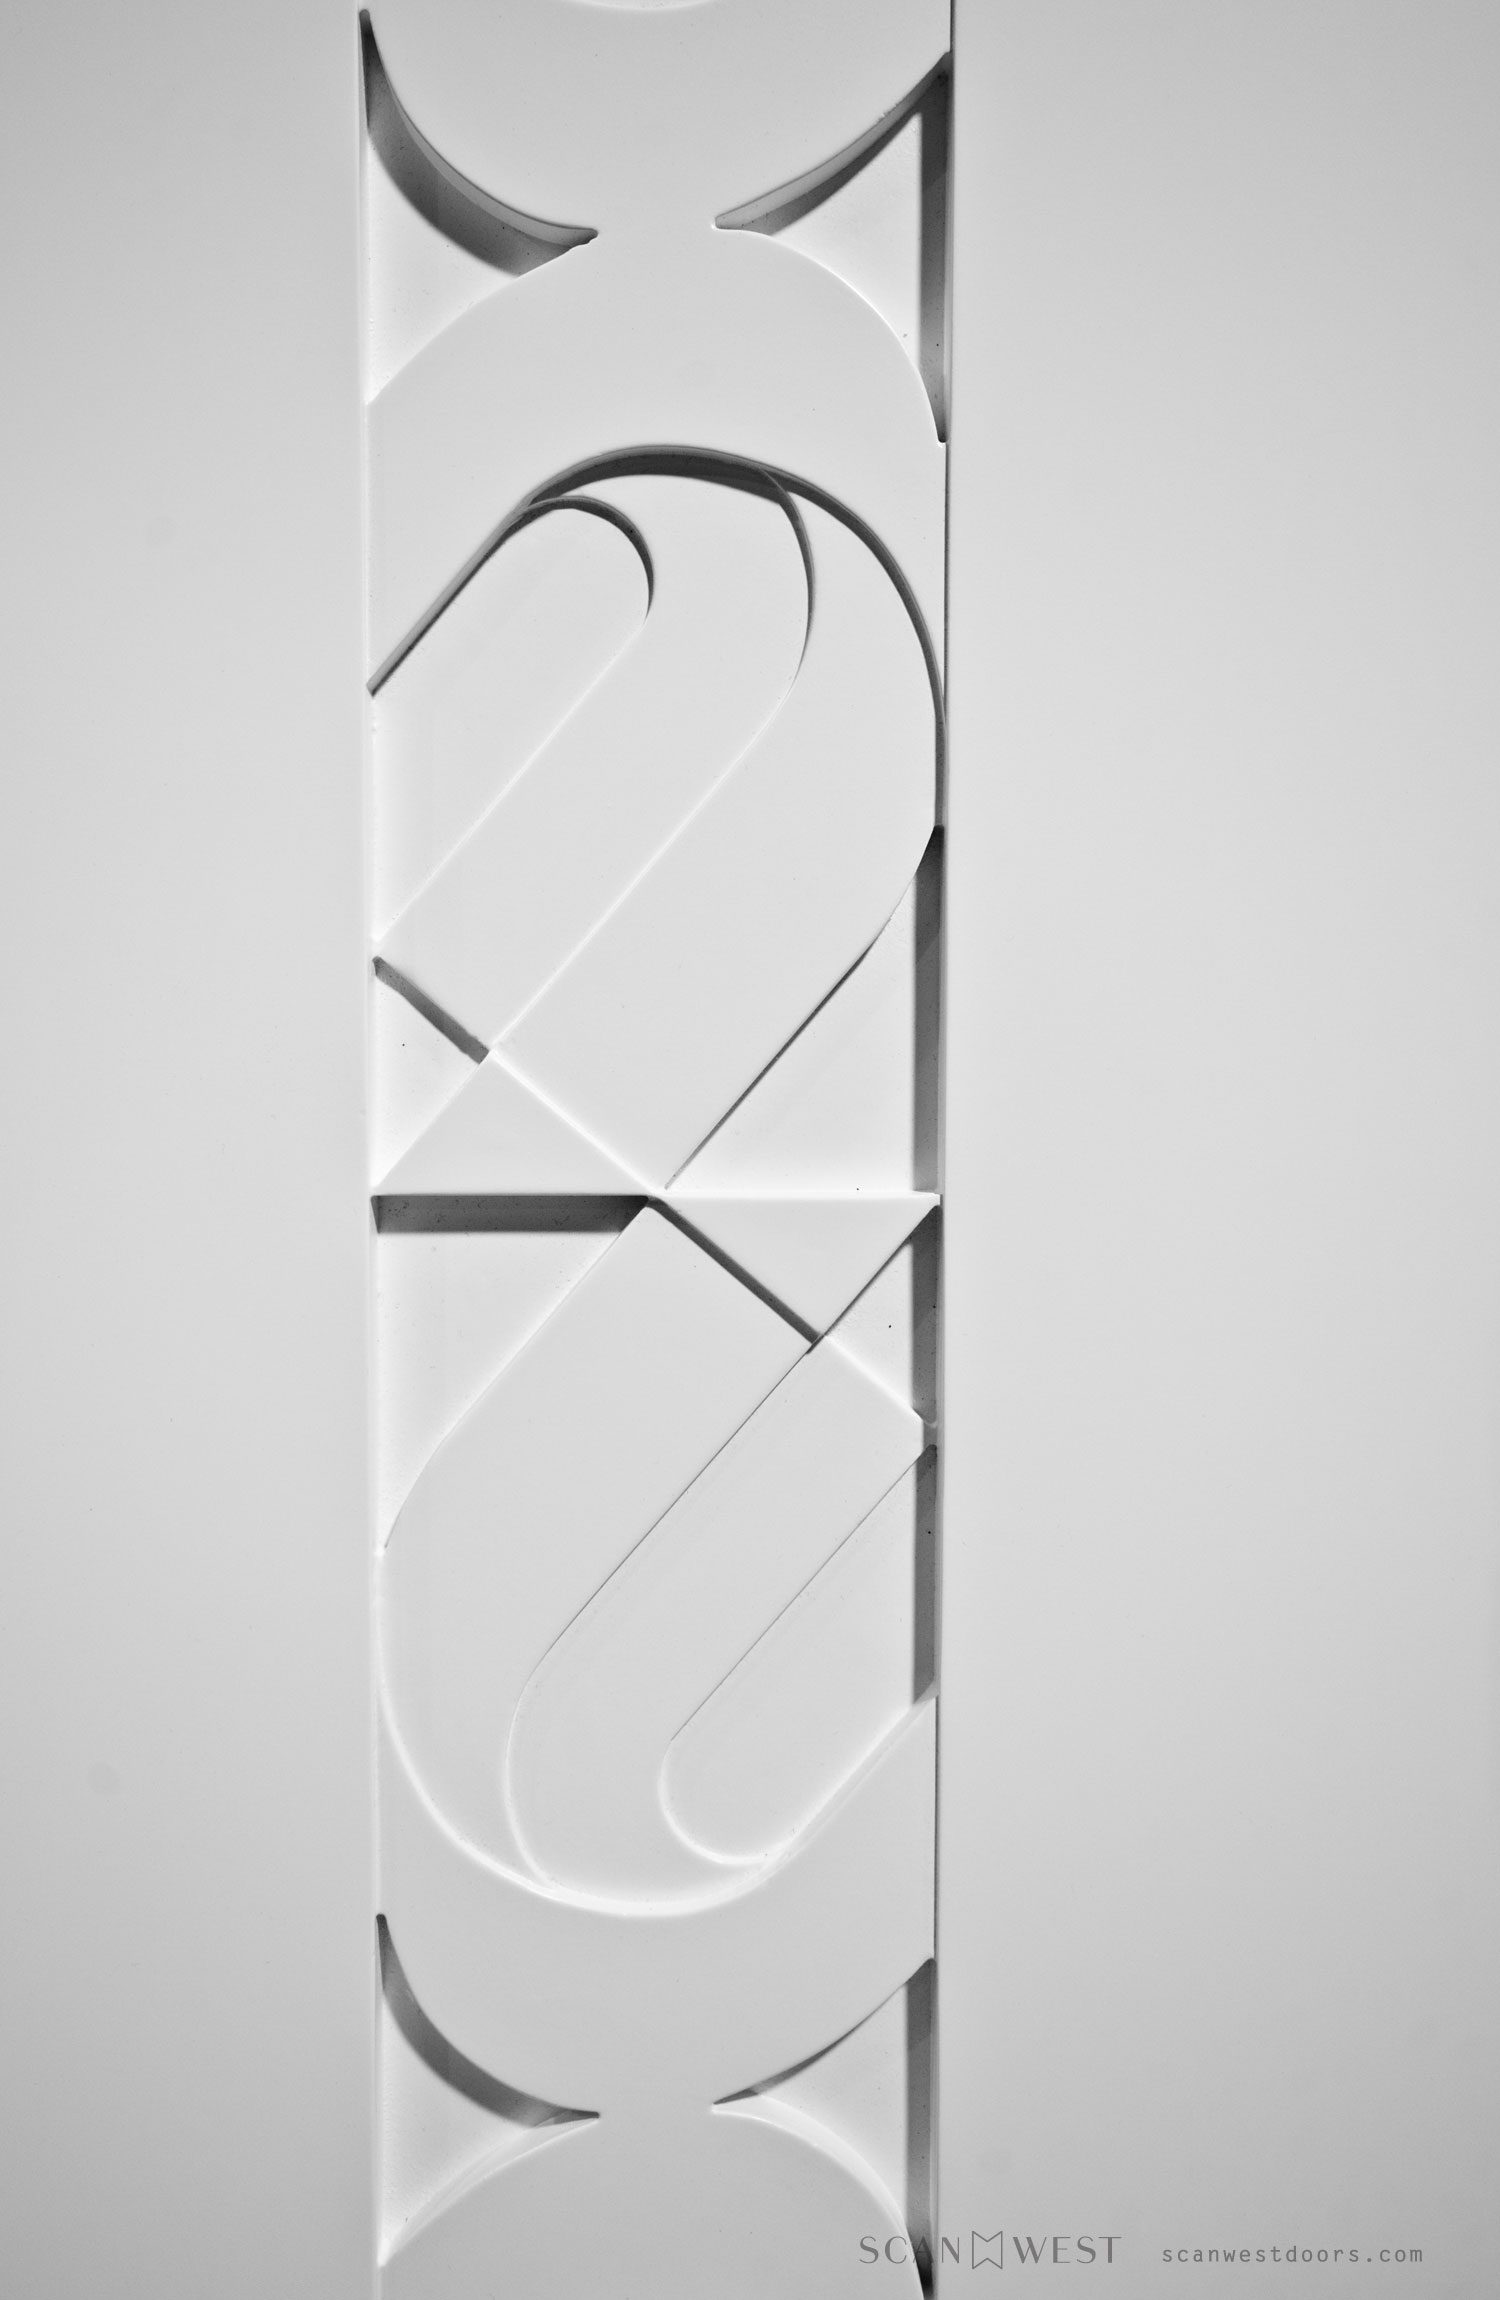 WEGNER-Door-Modern-Contemporary-Graphic-Texture-Luxury-1500x2300